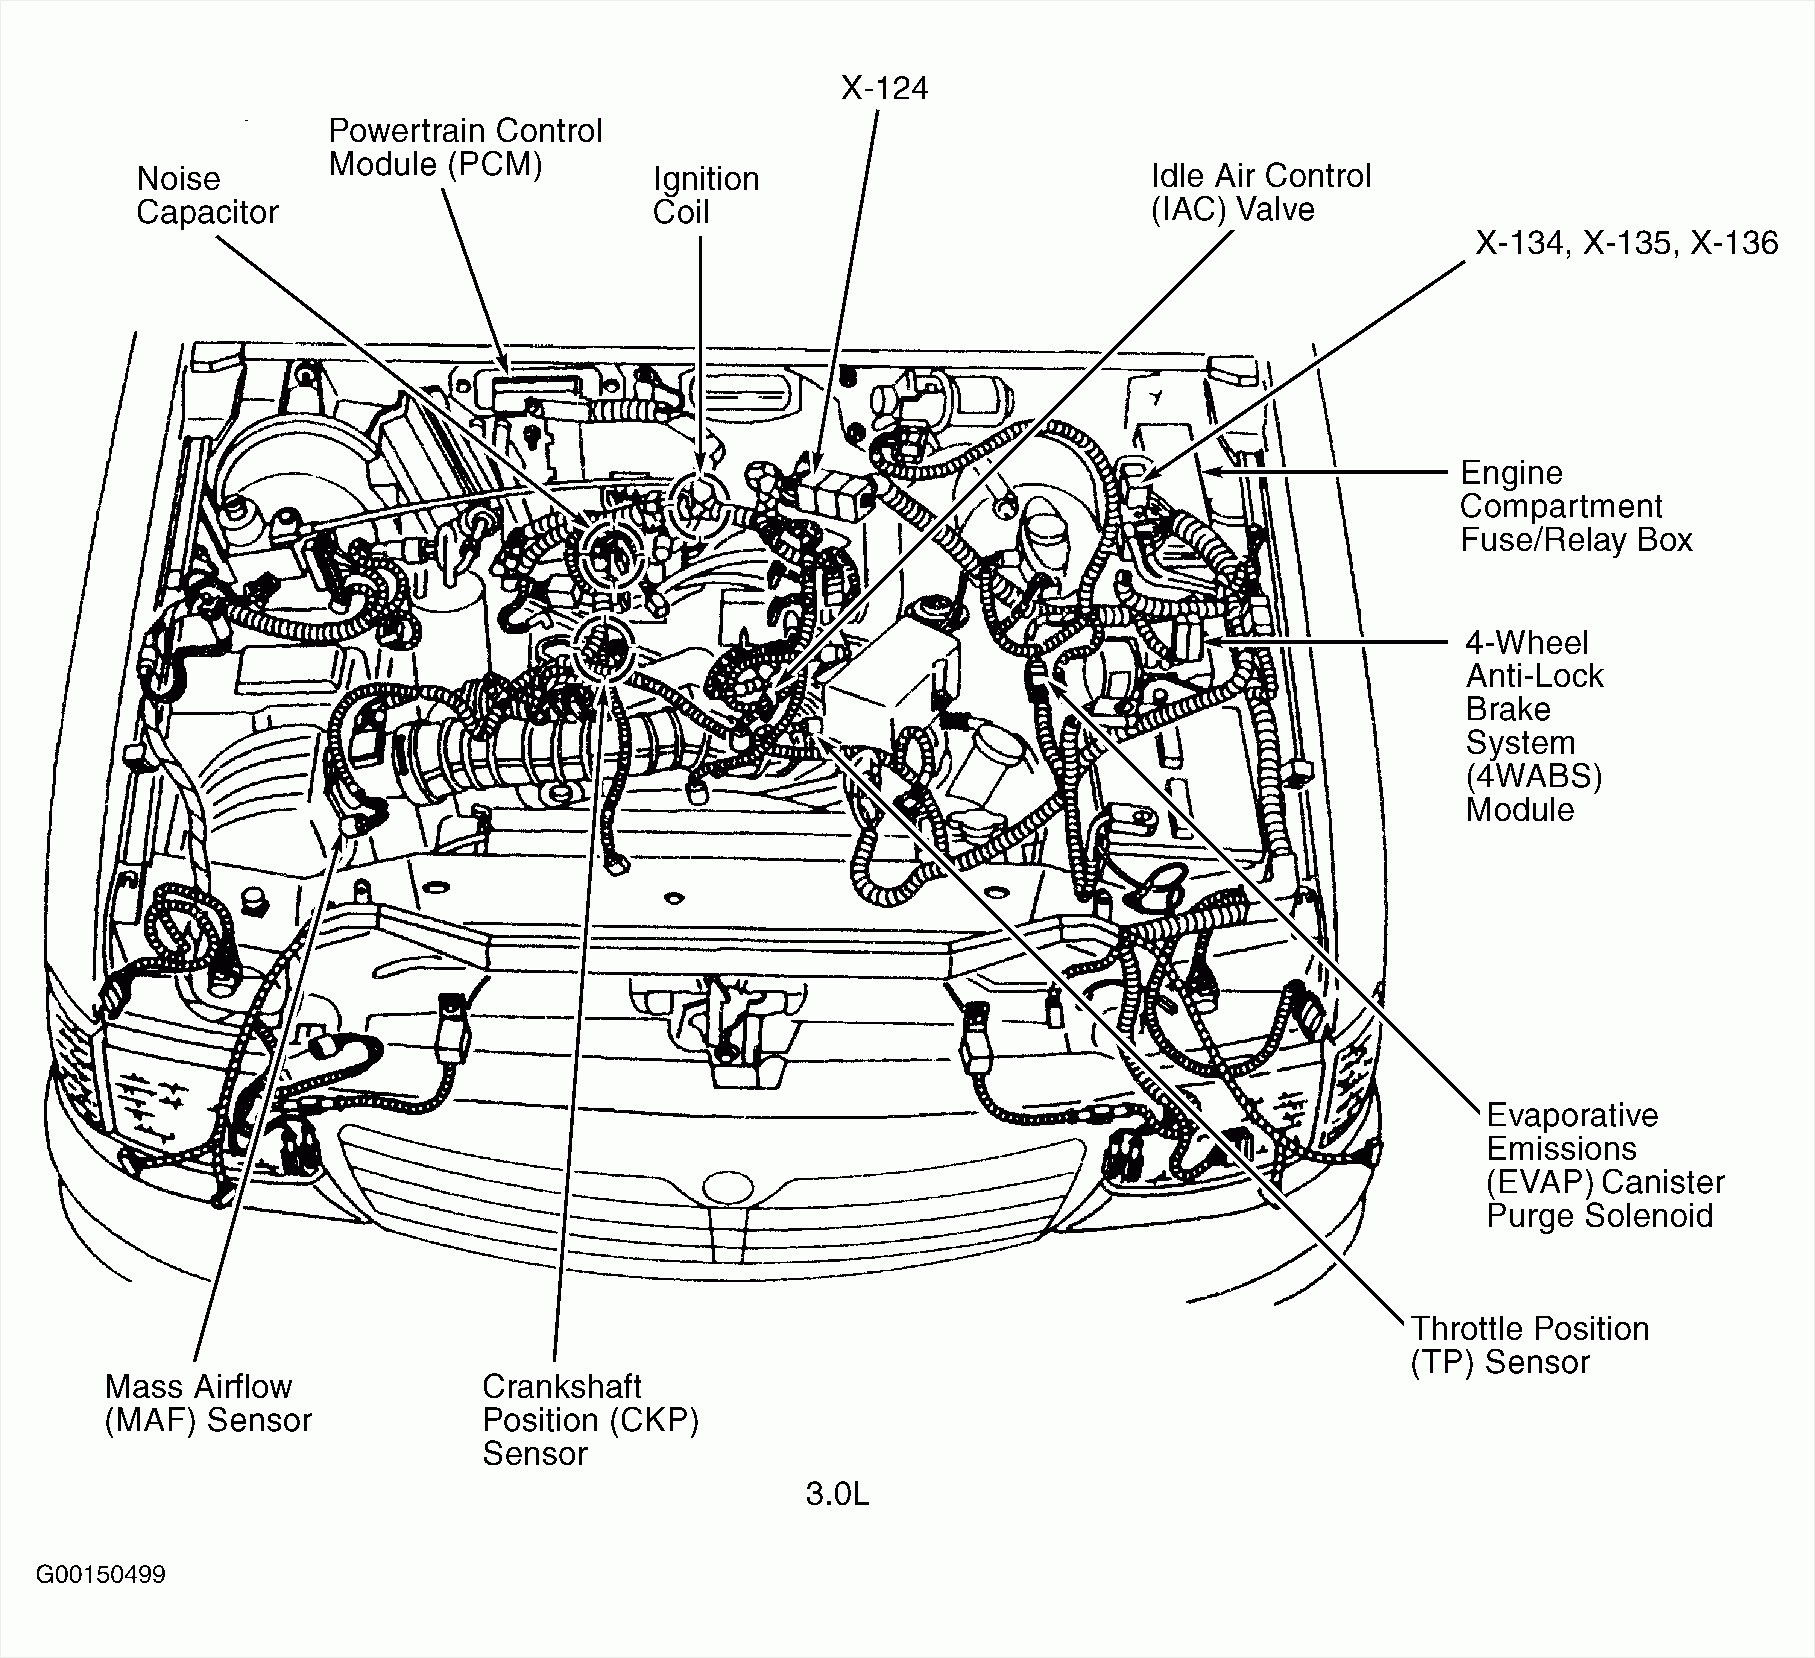 gm 3 4l v6 engine diagram reinvent your wiring diagram \u2022 pontiac 400 engine diagram v6 engines diagram with names trusted wiring diagrams u2022 rh radkan co chevy 3 4l engine